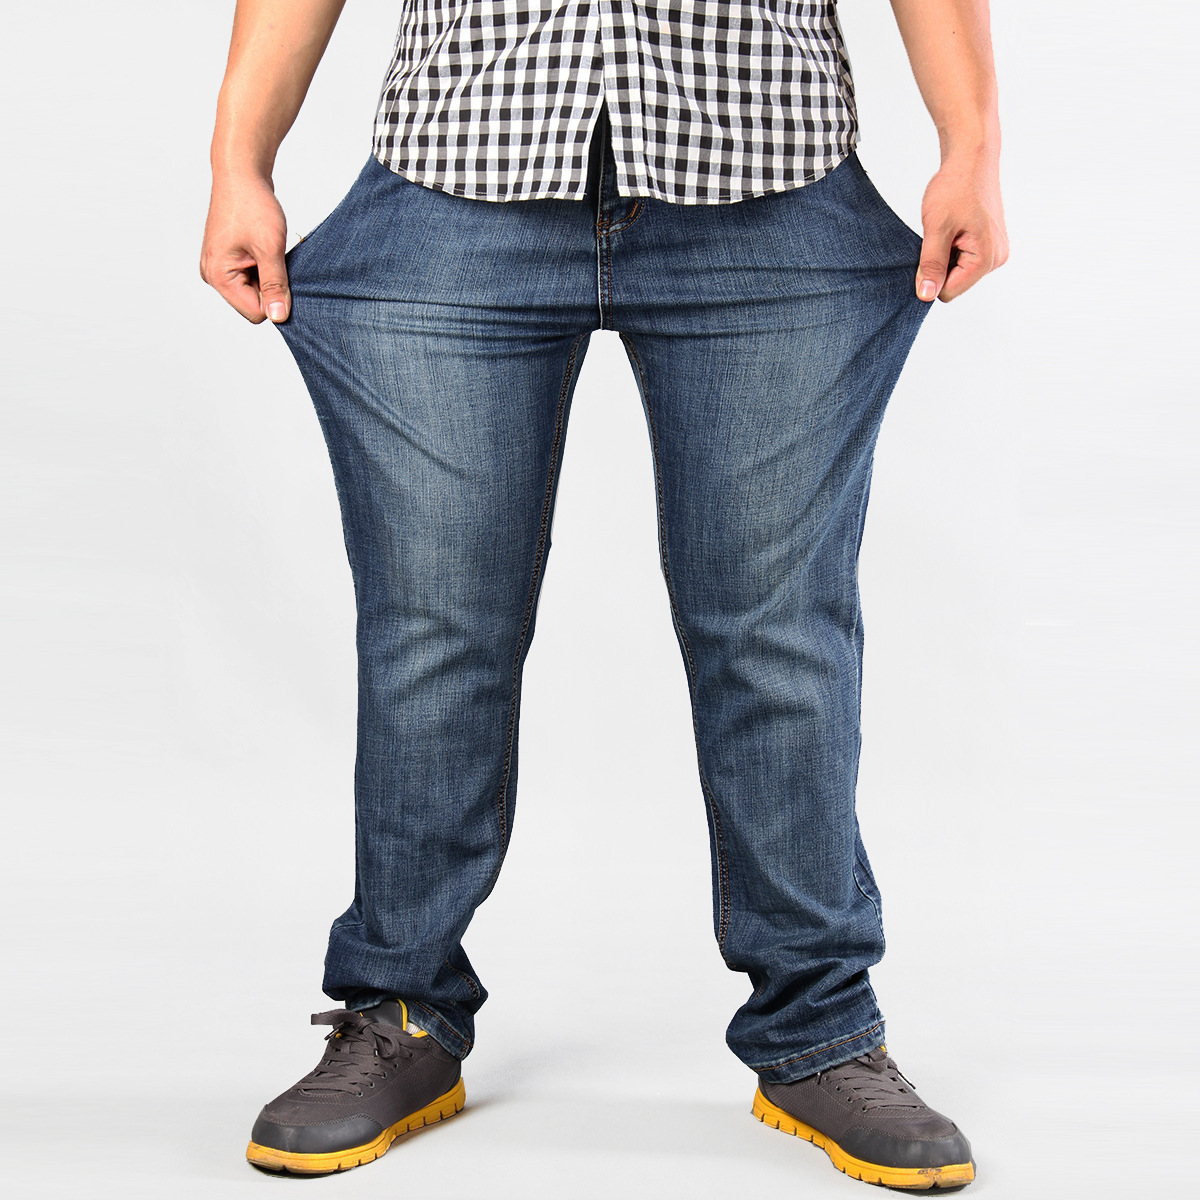 Obesity Men Plus-sized High Waist Lard-bucket Pants Fat Fatty Loose And Plus-sized Daddy Clothes Cowboy Trousers